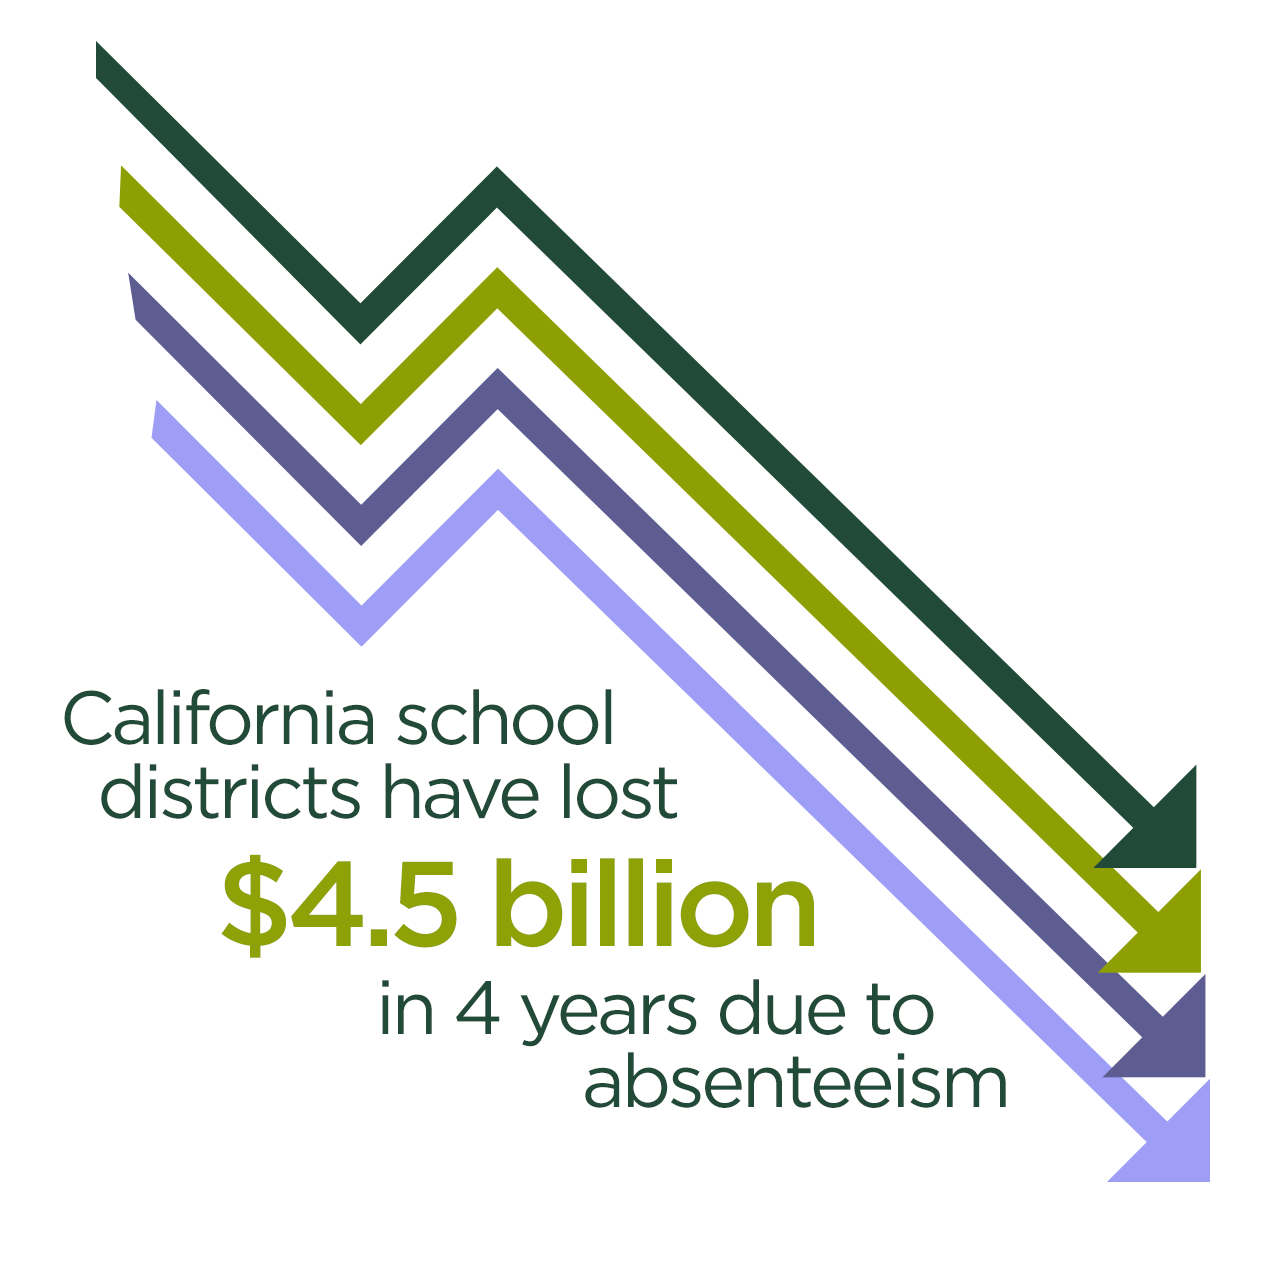 California school districts have lost $4.5 billion in 4 years due to absenteeism.